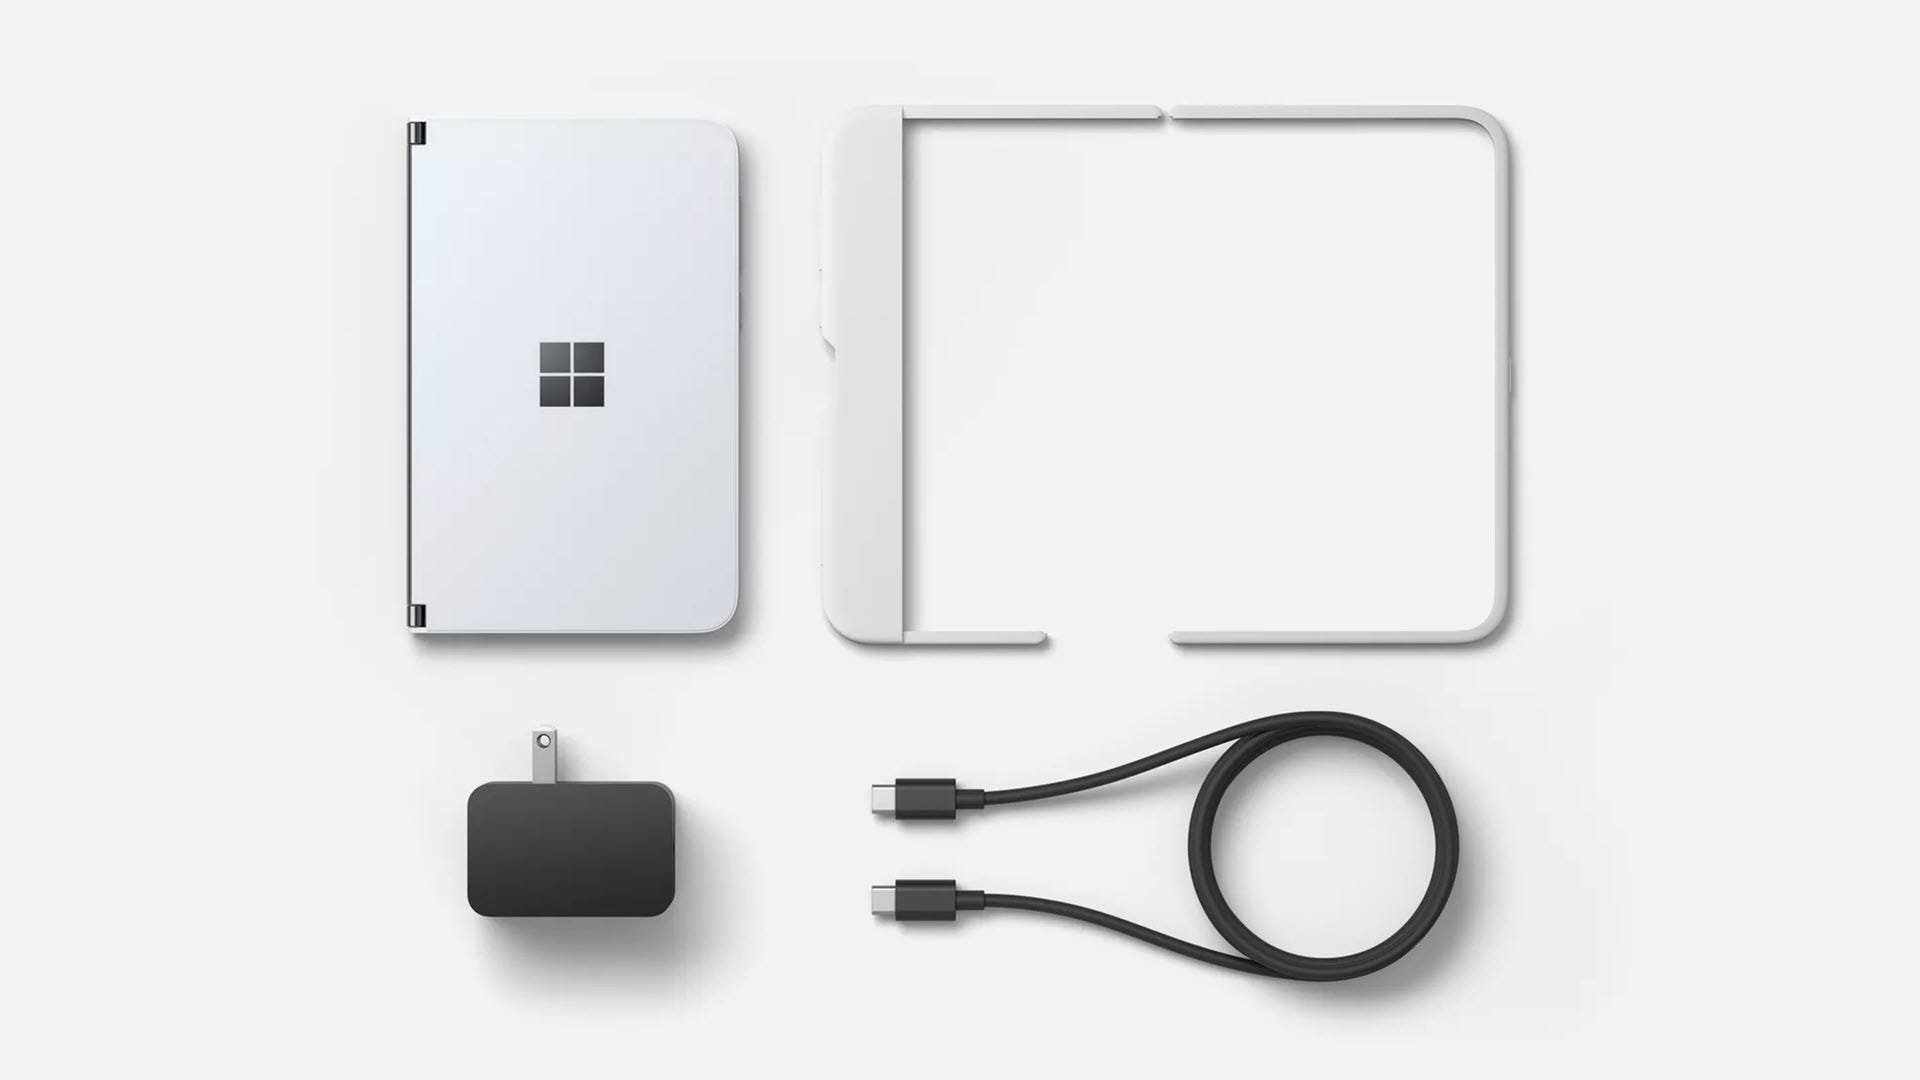 The Surface Duo phone, a charging cord and brick, and a bumper case.